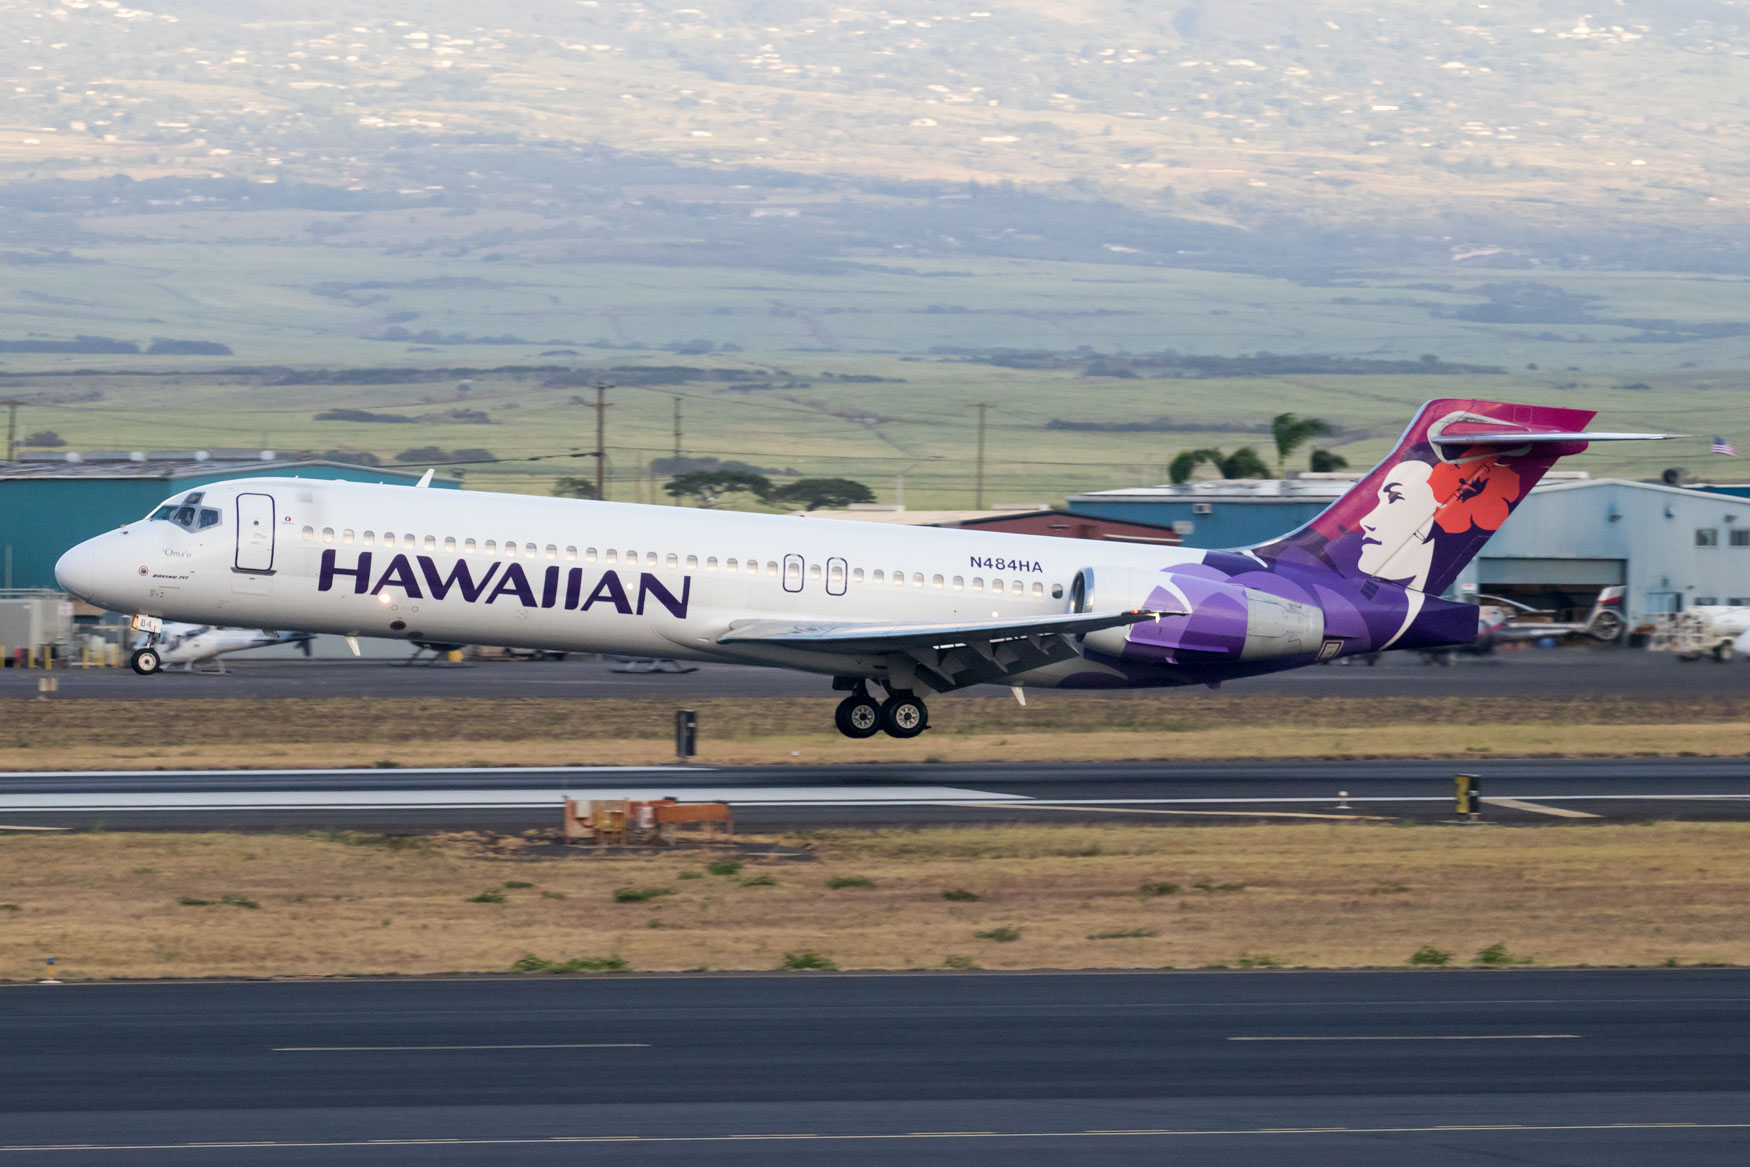 Hawaiian Airlines 717-200 Landing at Kahului